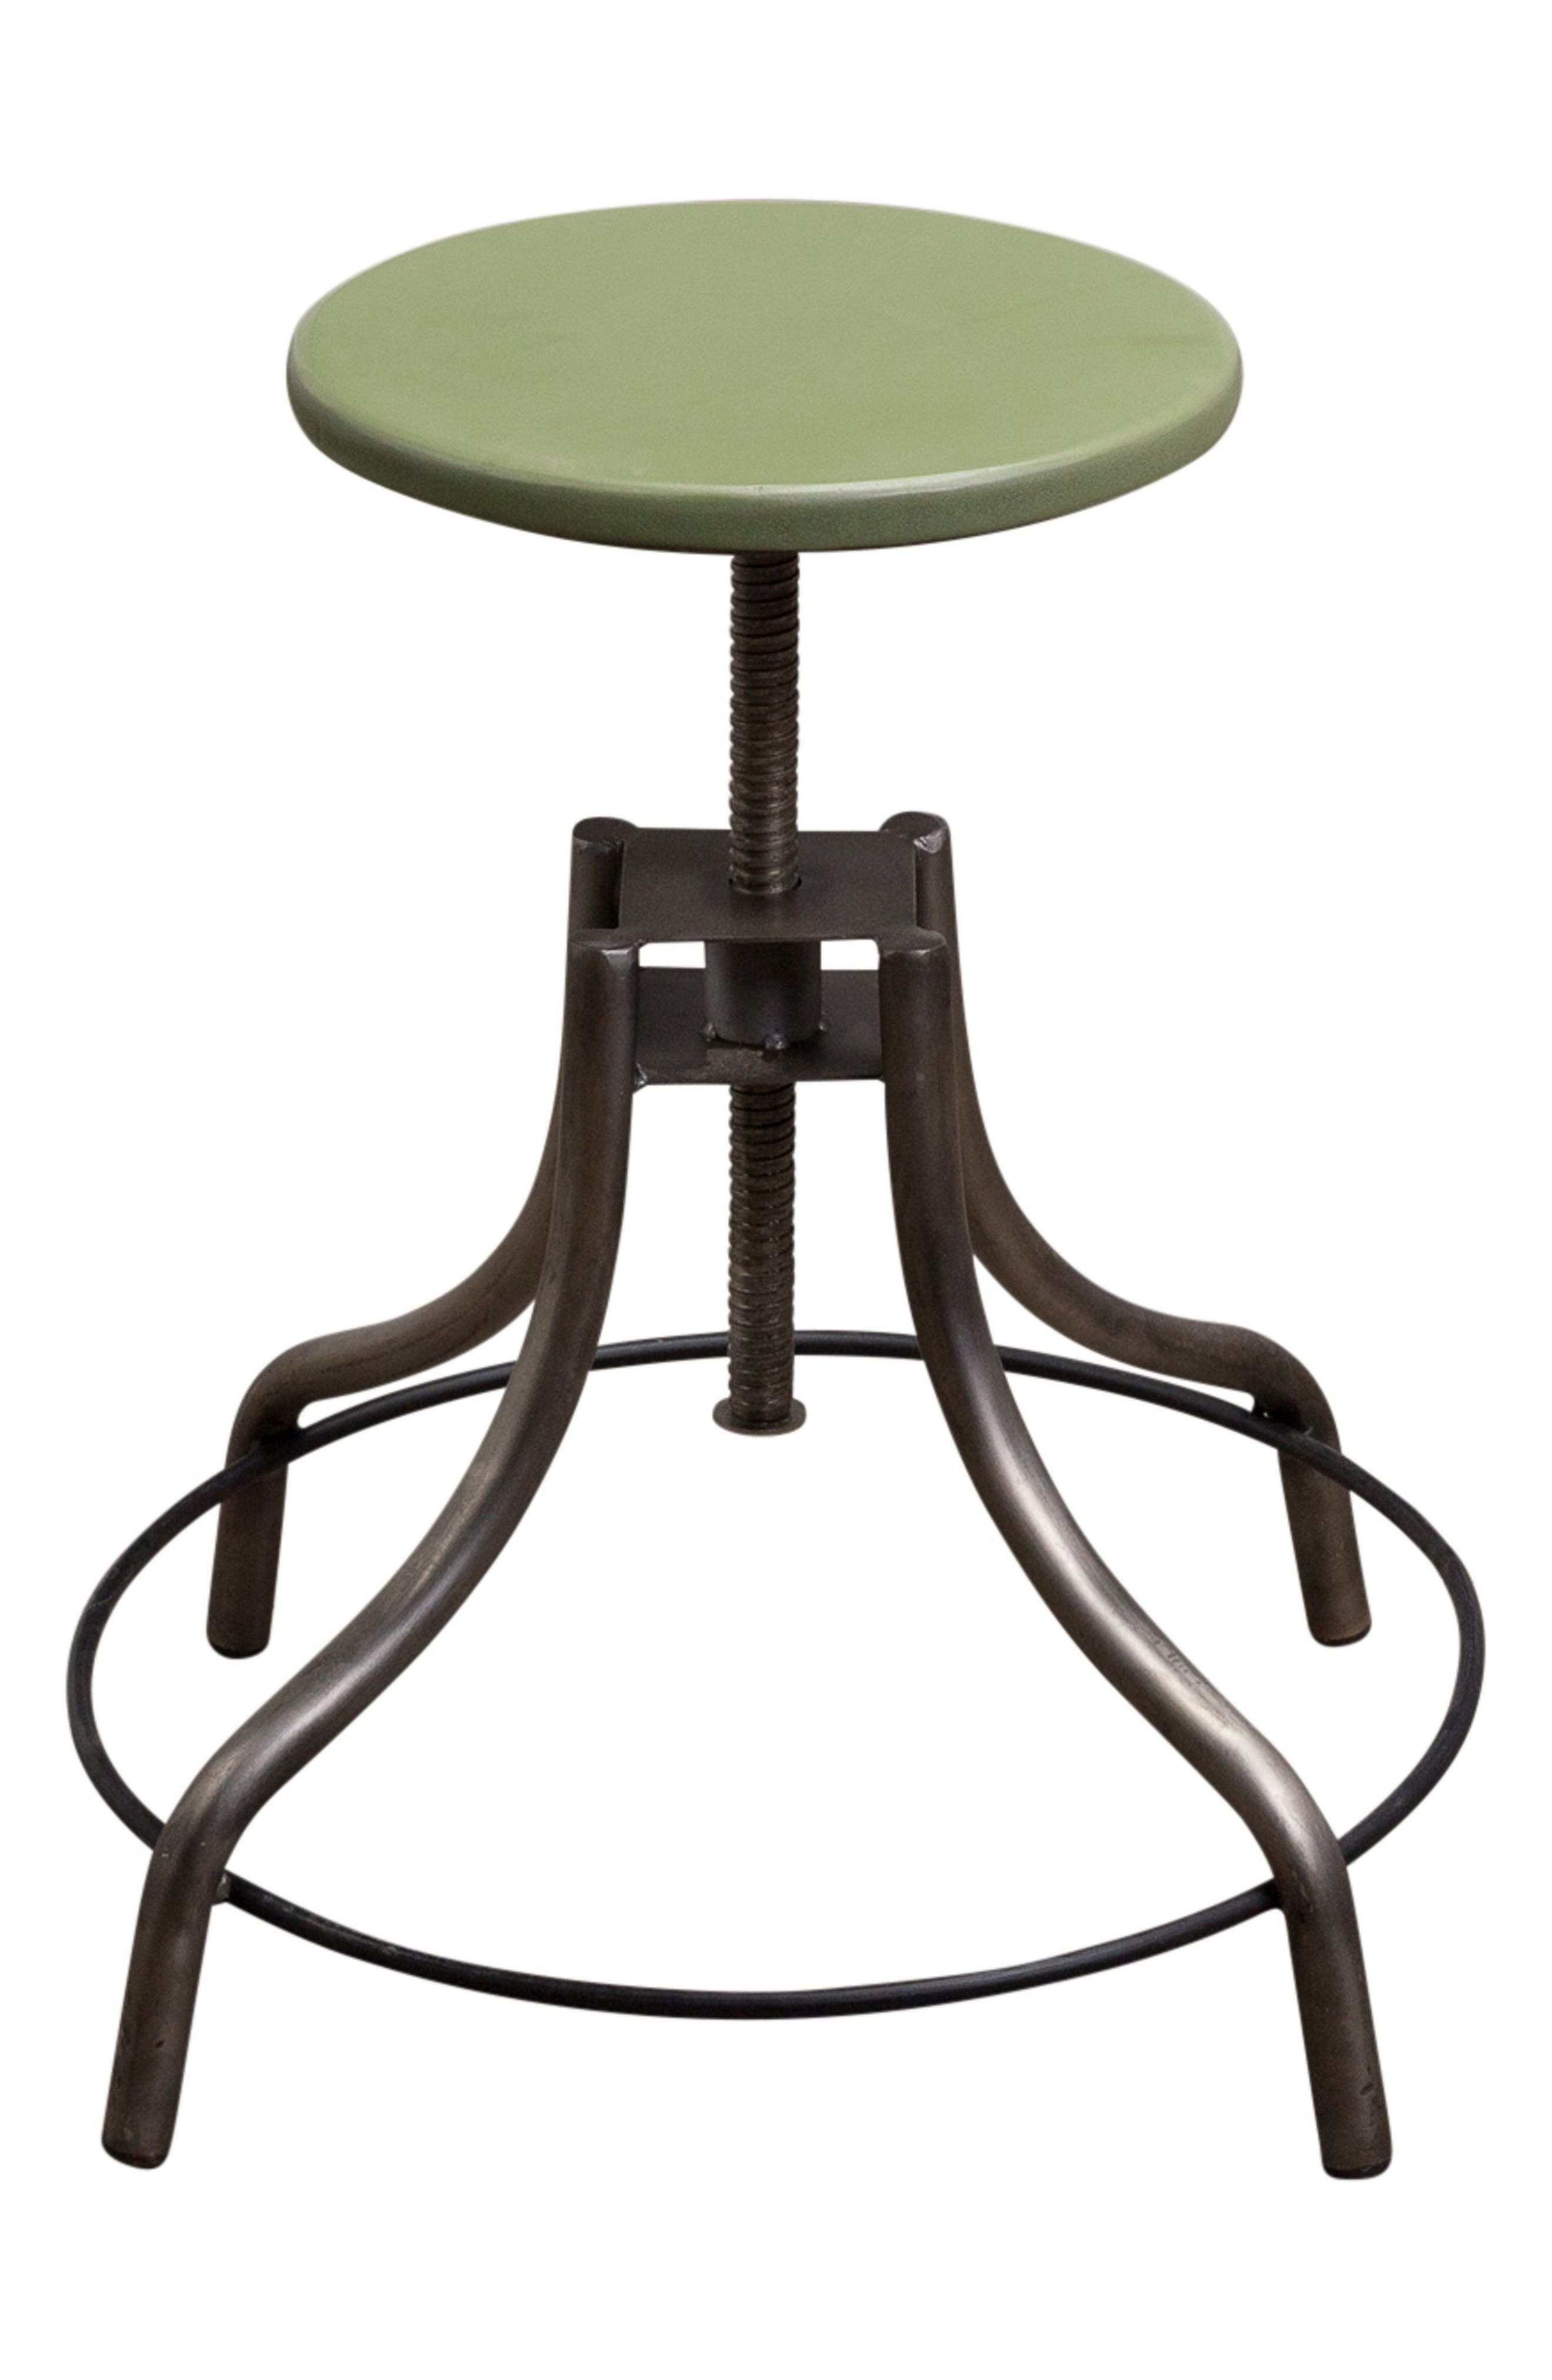 Factory Twist Stool,                         Main,                         color, Green Patina Steel